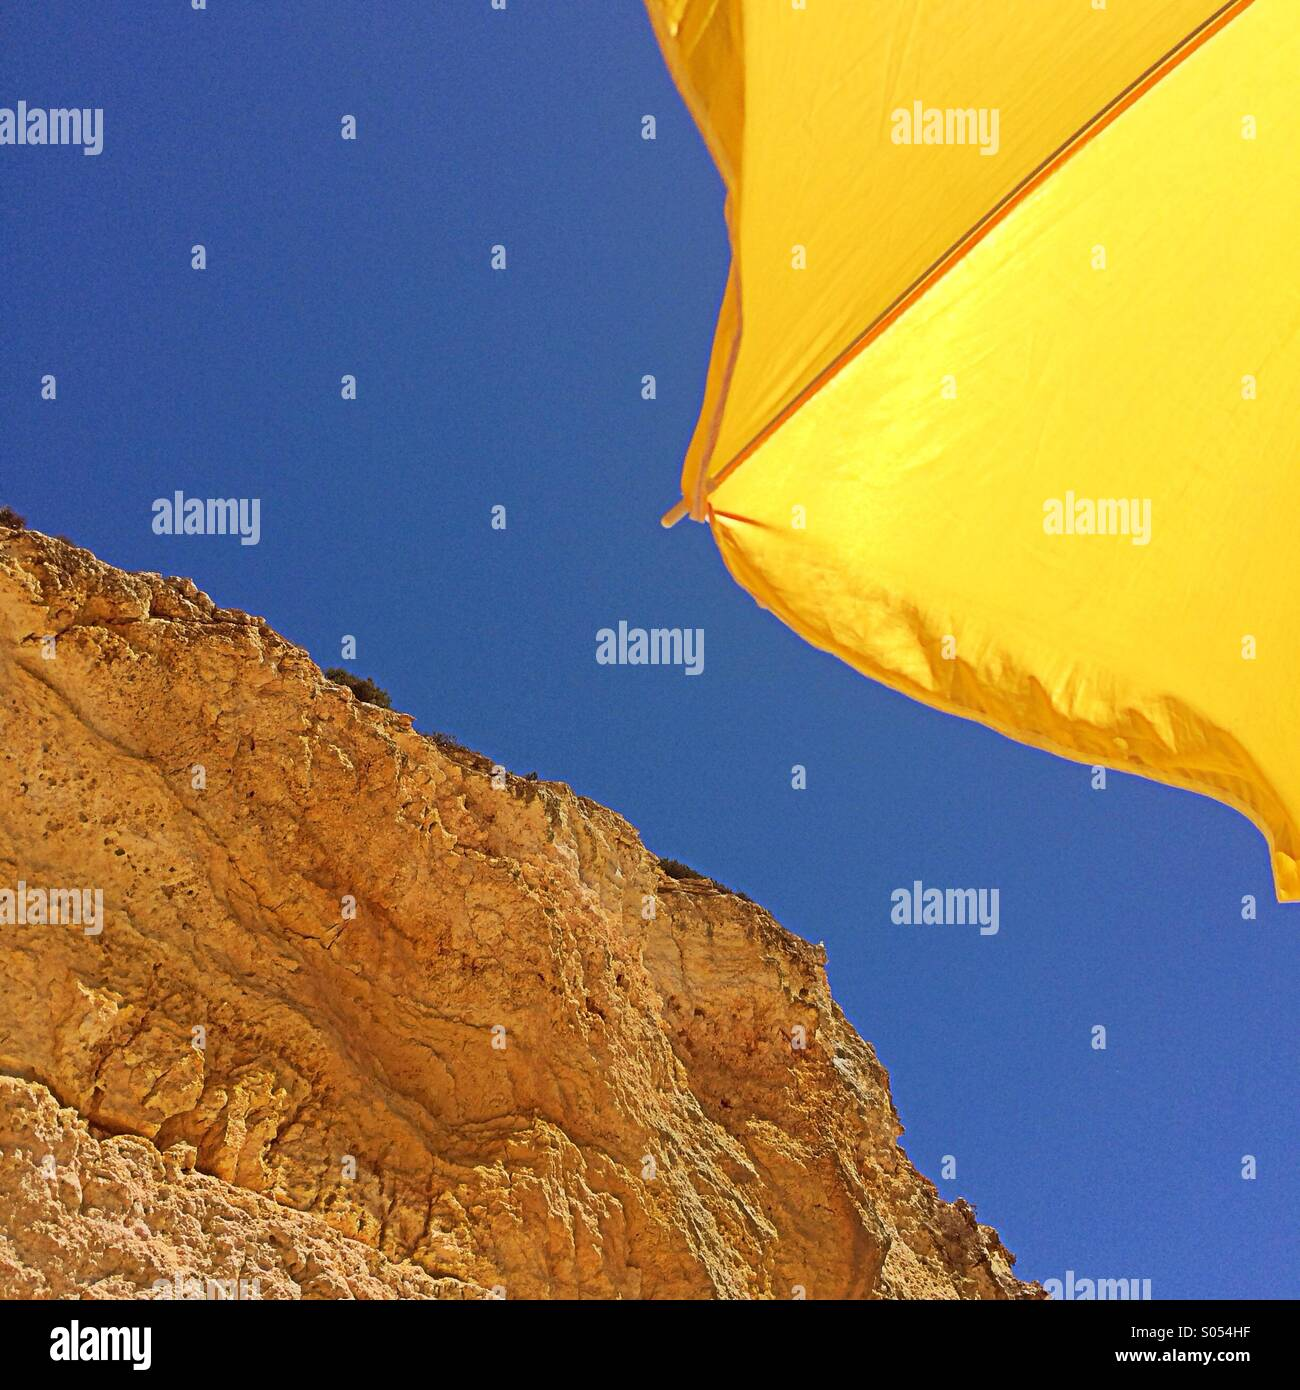 Yellow parasol, blue sky and rocks, Algarve, Portugal - Stock Image